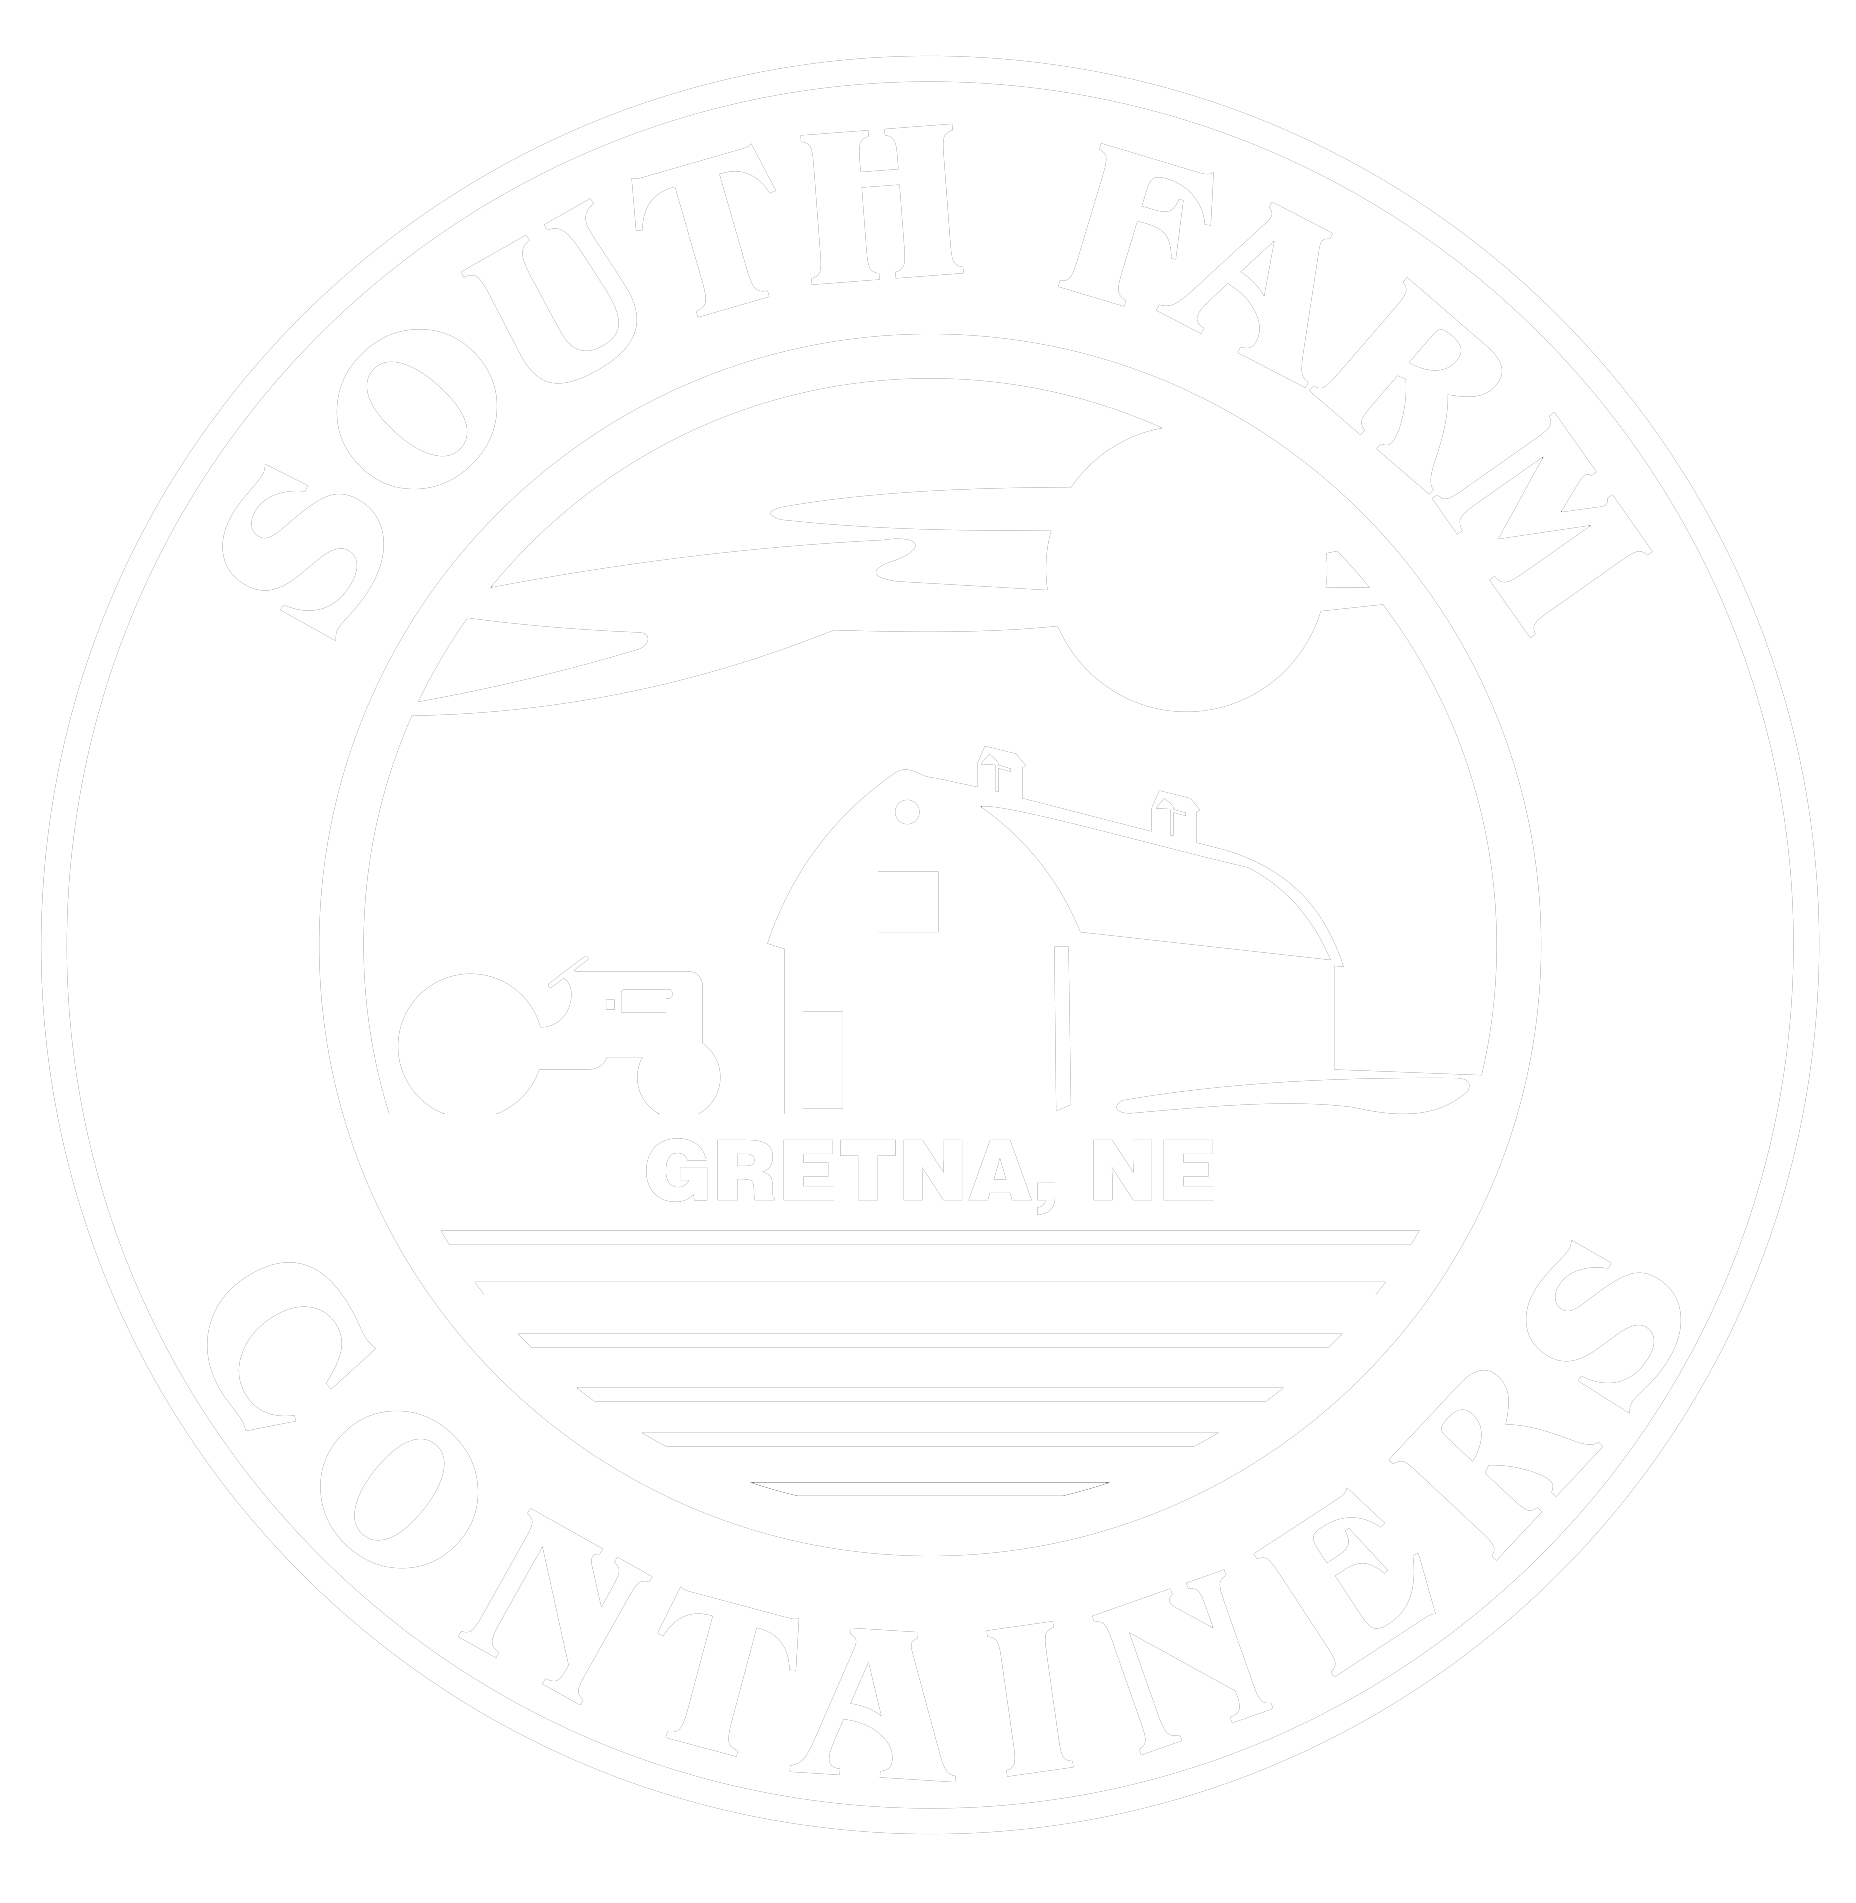 South Farm Containers